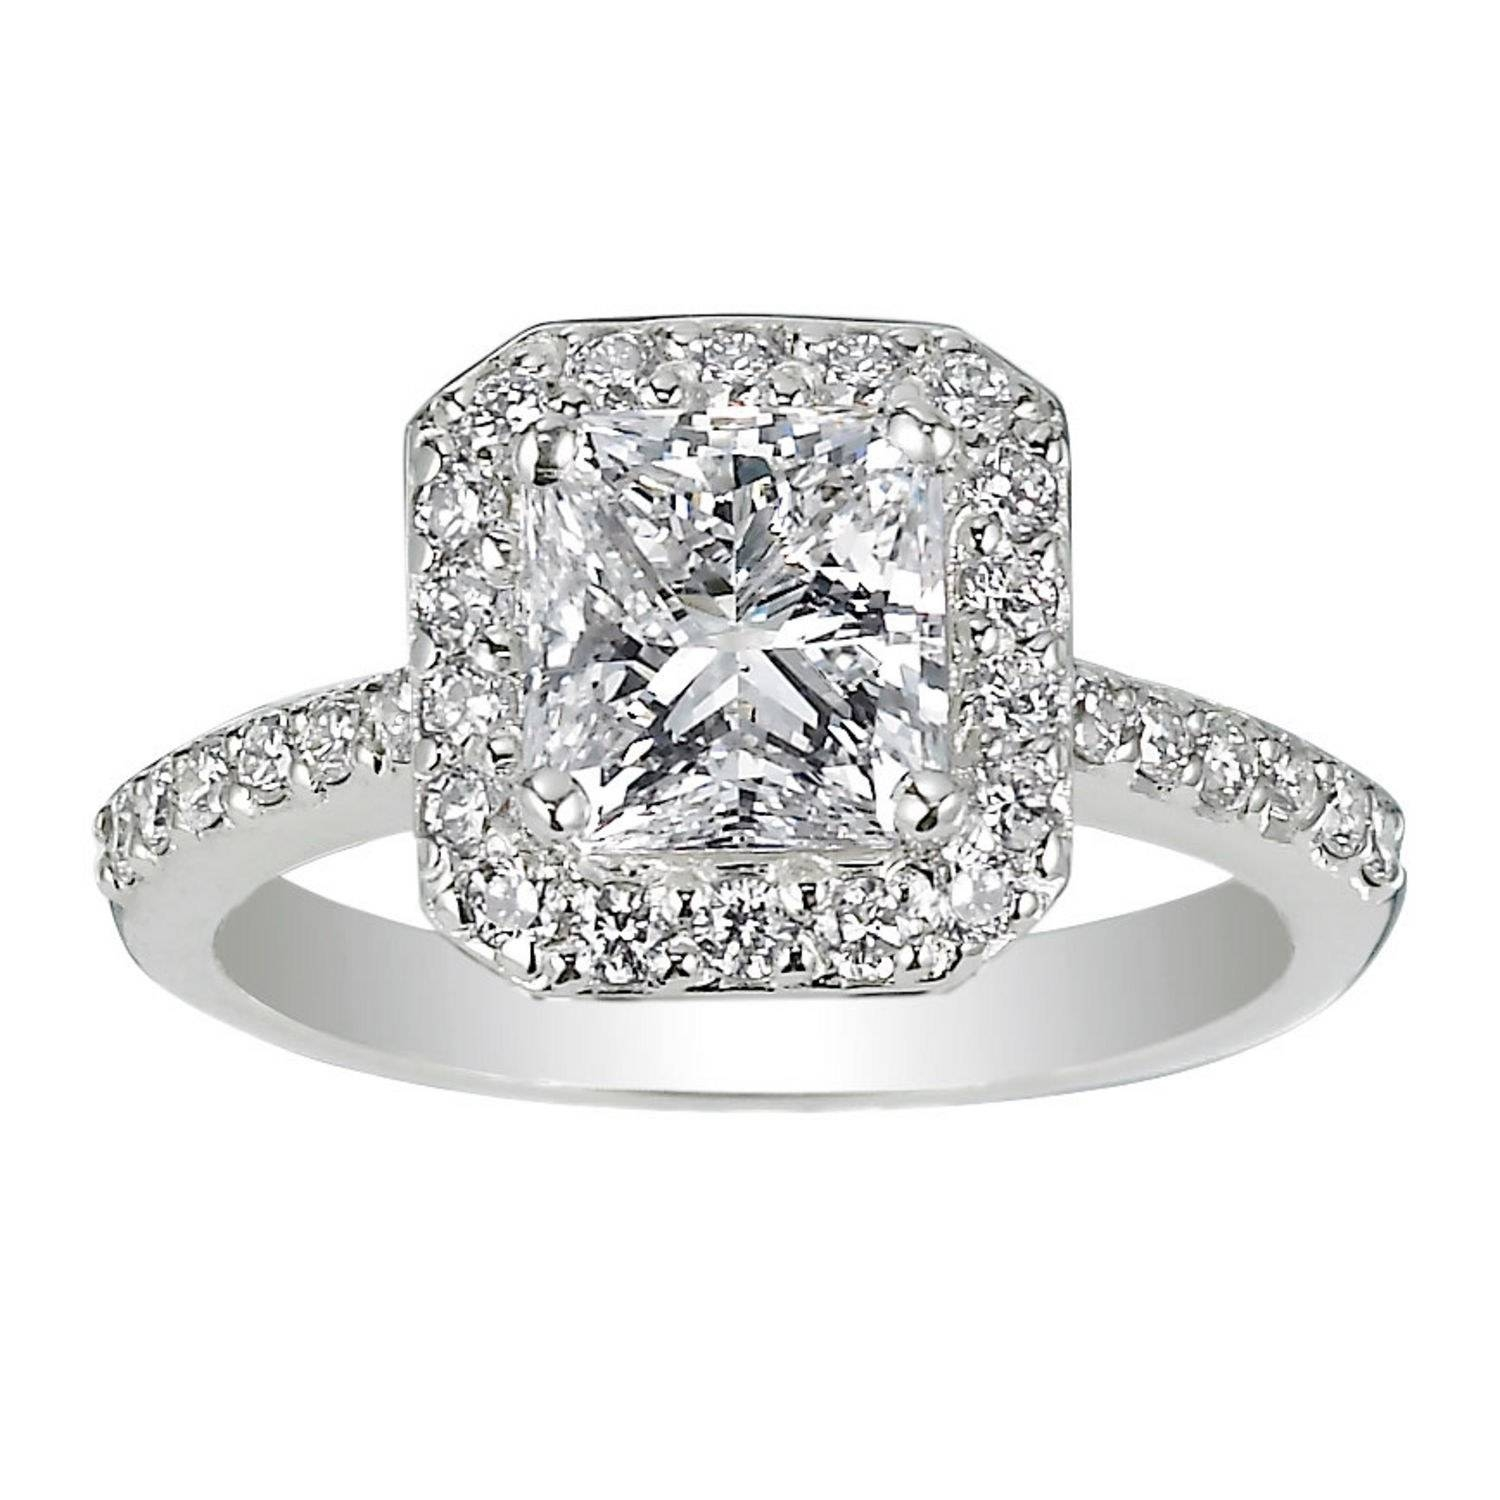 Diamond Engagement Ring. Diamond Engagement Rings Under 300 With Regard To Diamond Engagement Rings Under 300 (Gallery 10 of 15)